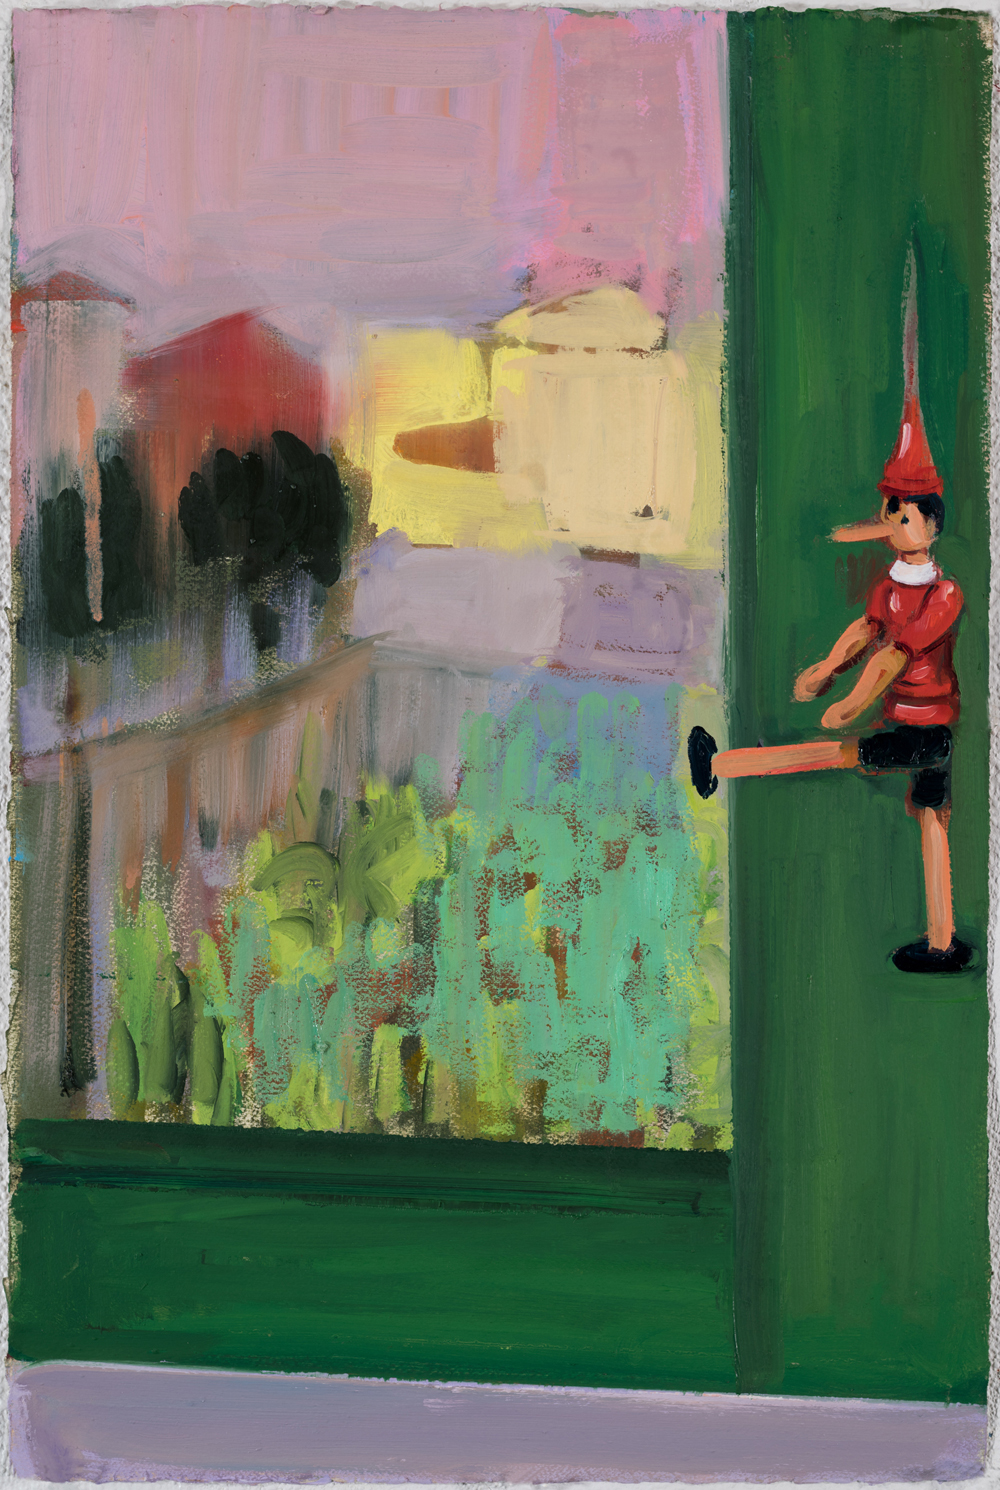 Window View - Hanging Pinocchio, 2017